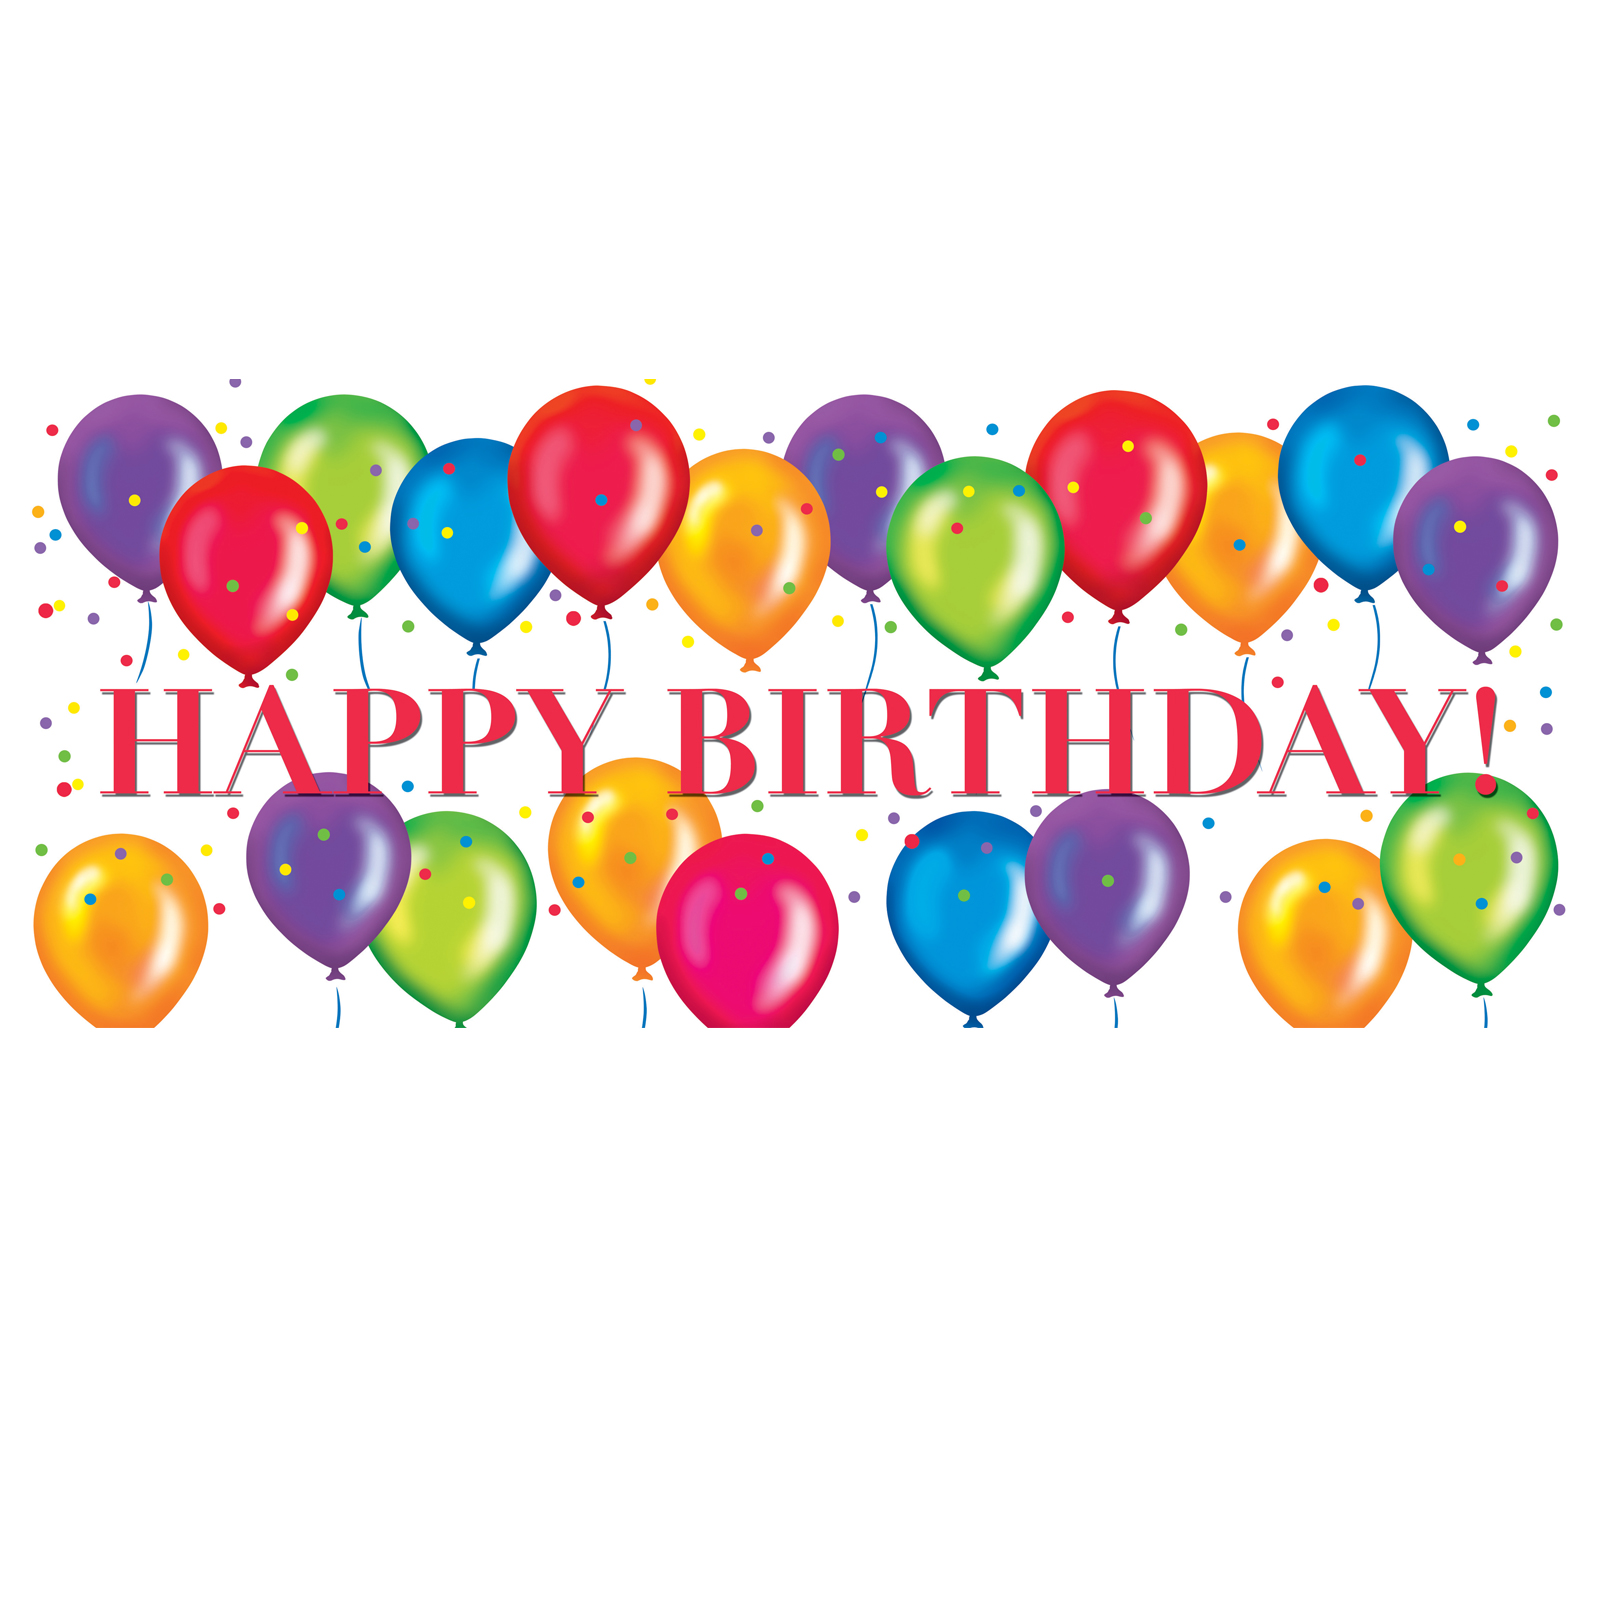 1600x1600 Happy birthday clipart birthday on happy clip art and picasa 3